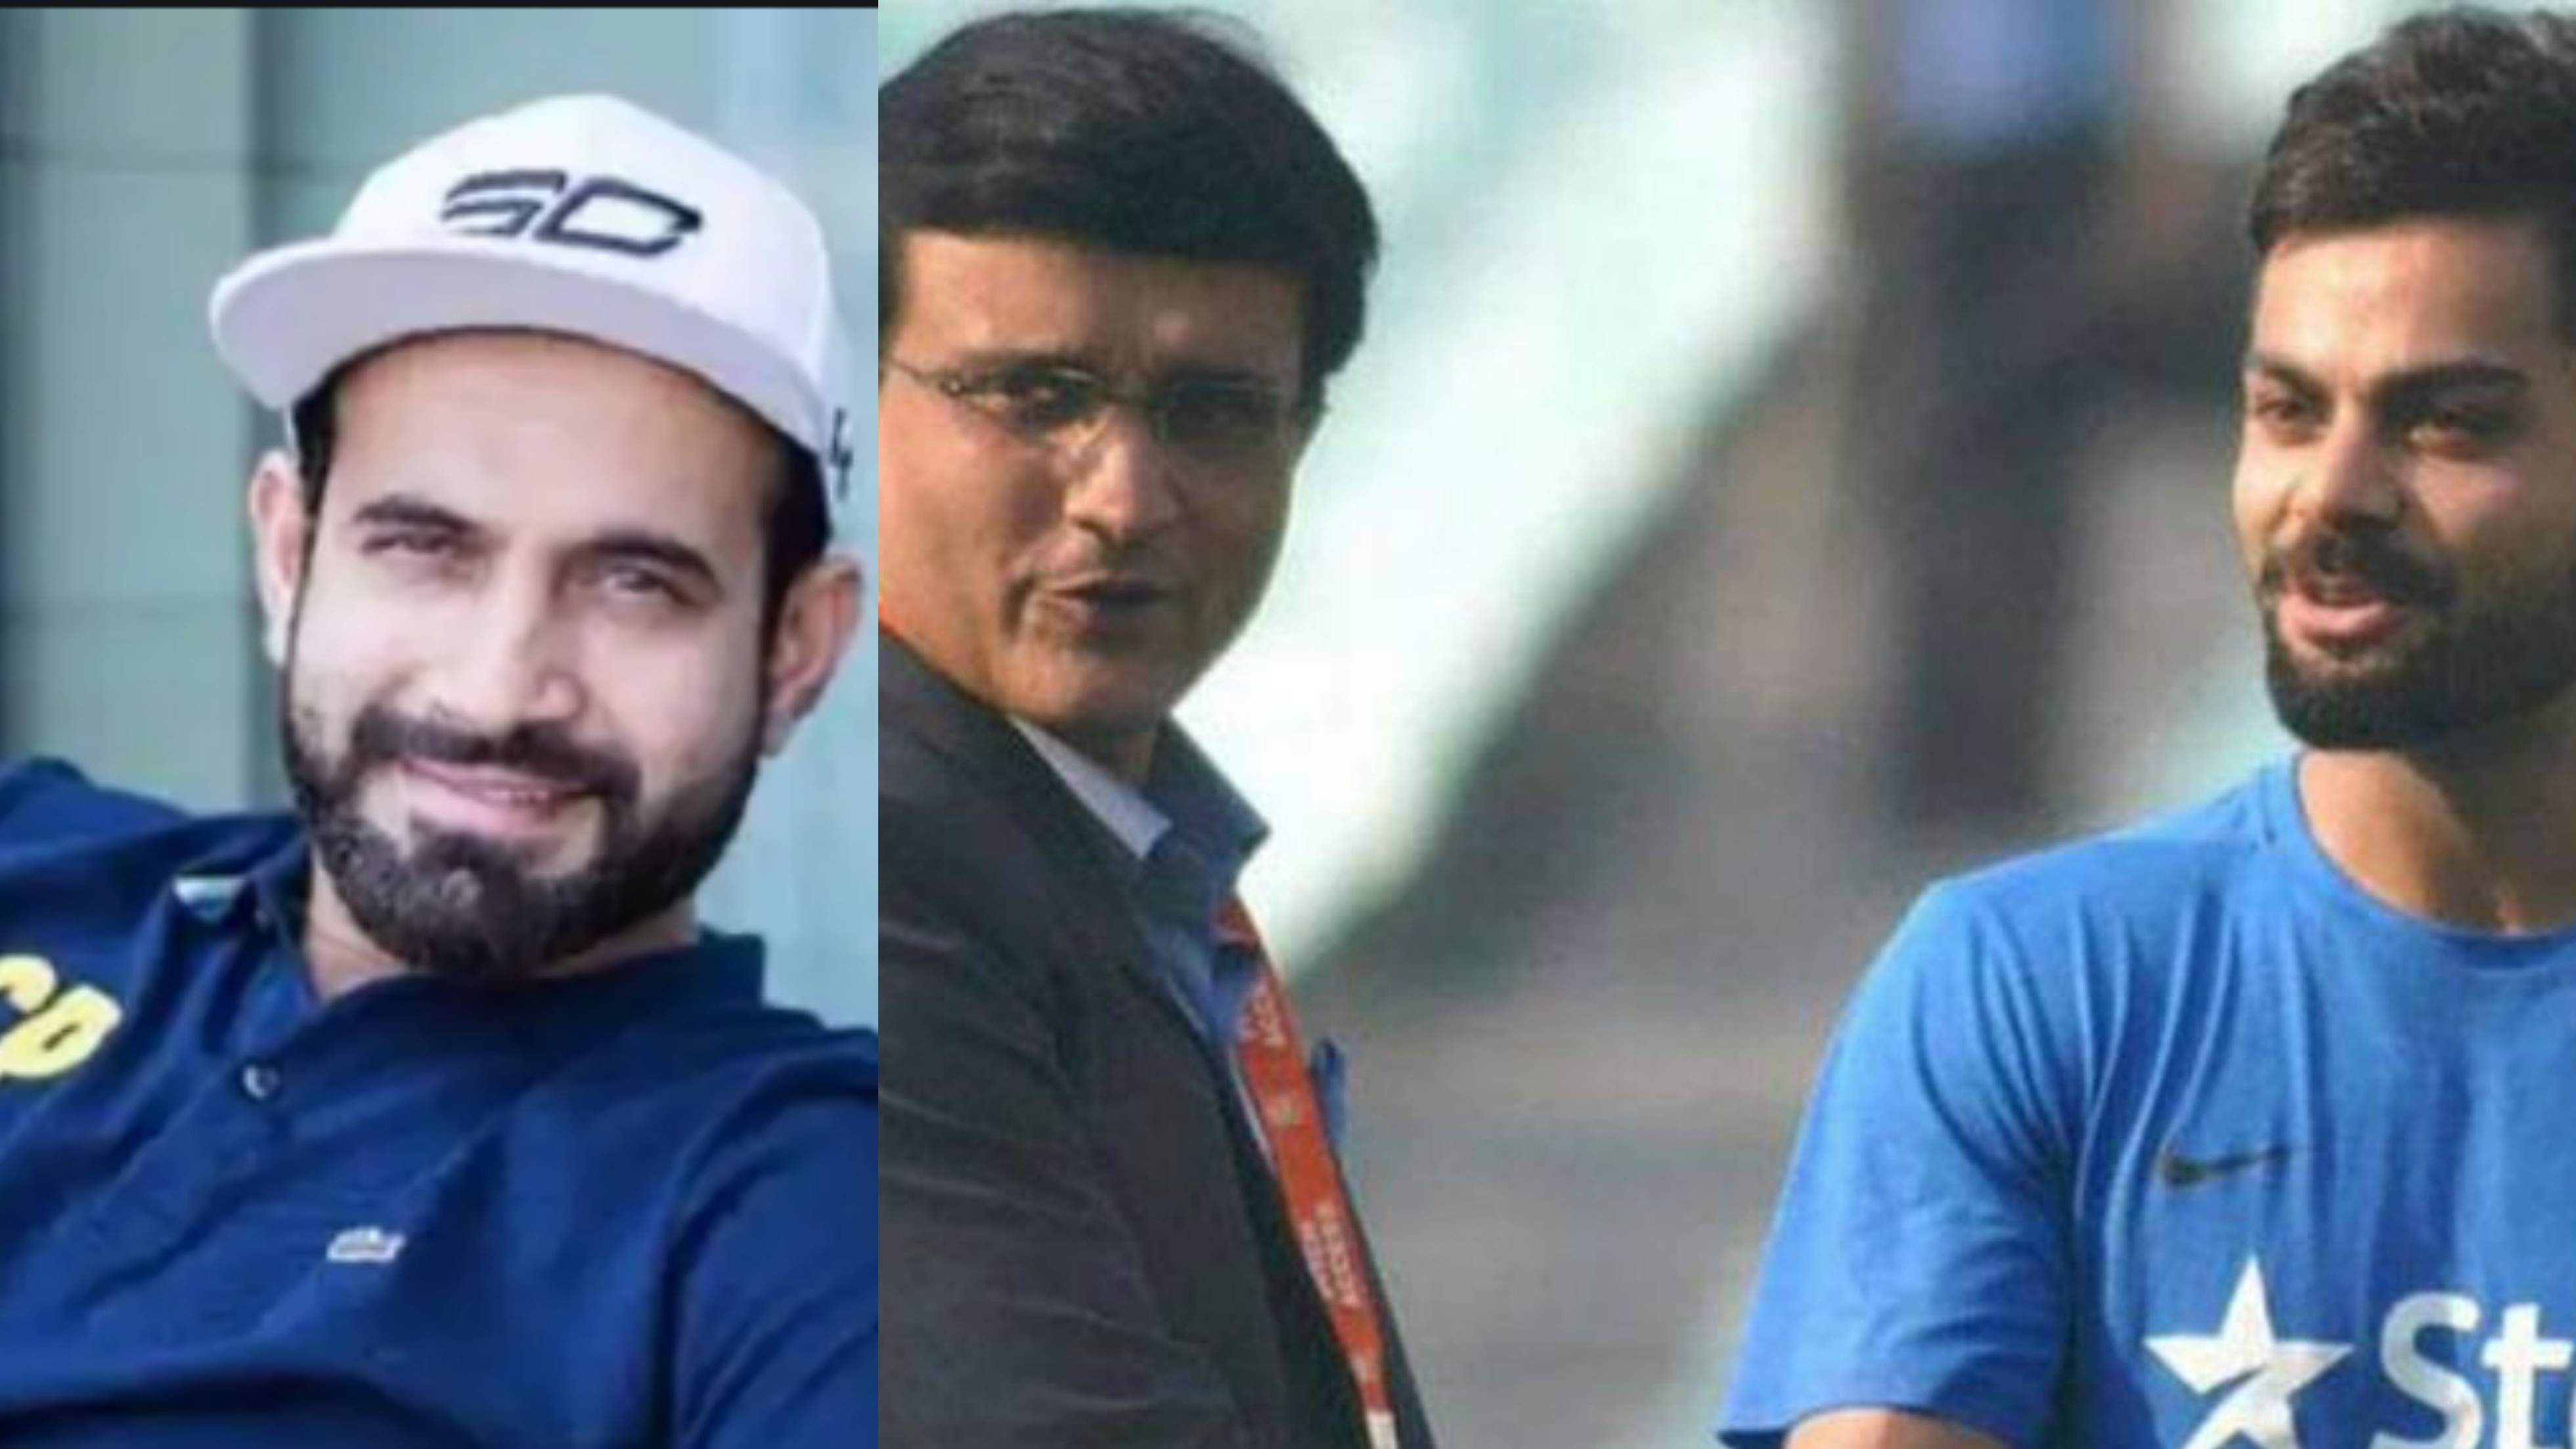 Virat Kohli's aura is as same as Sourav Ganguly's, says Irfan Pathan